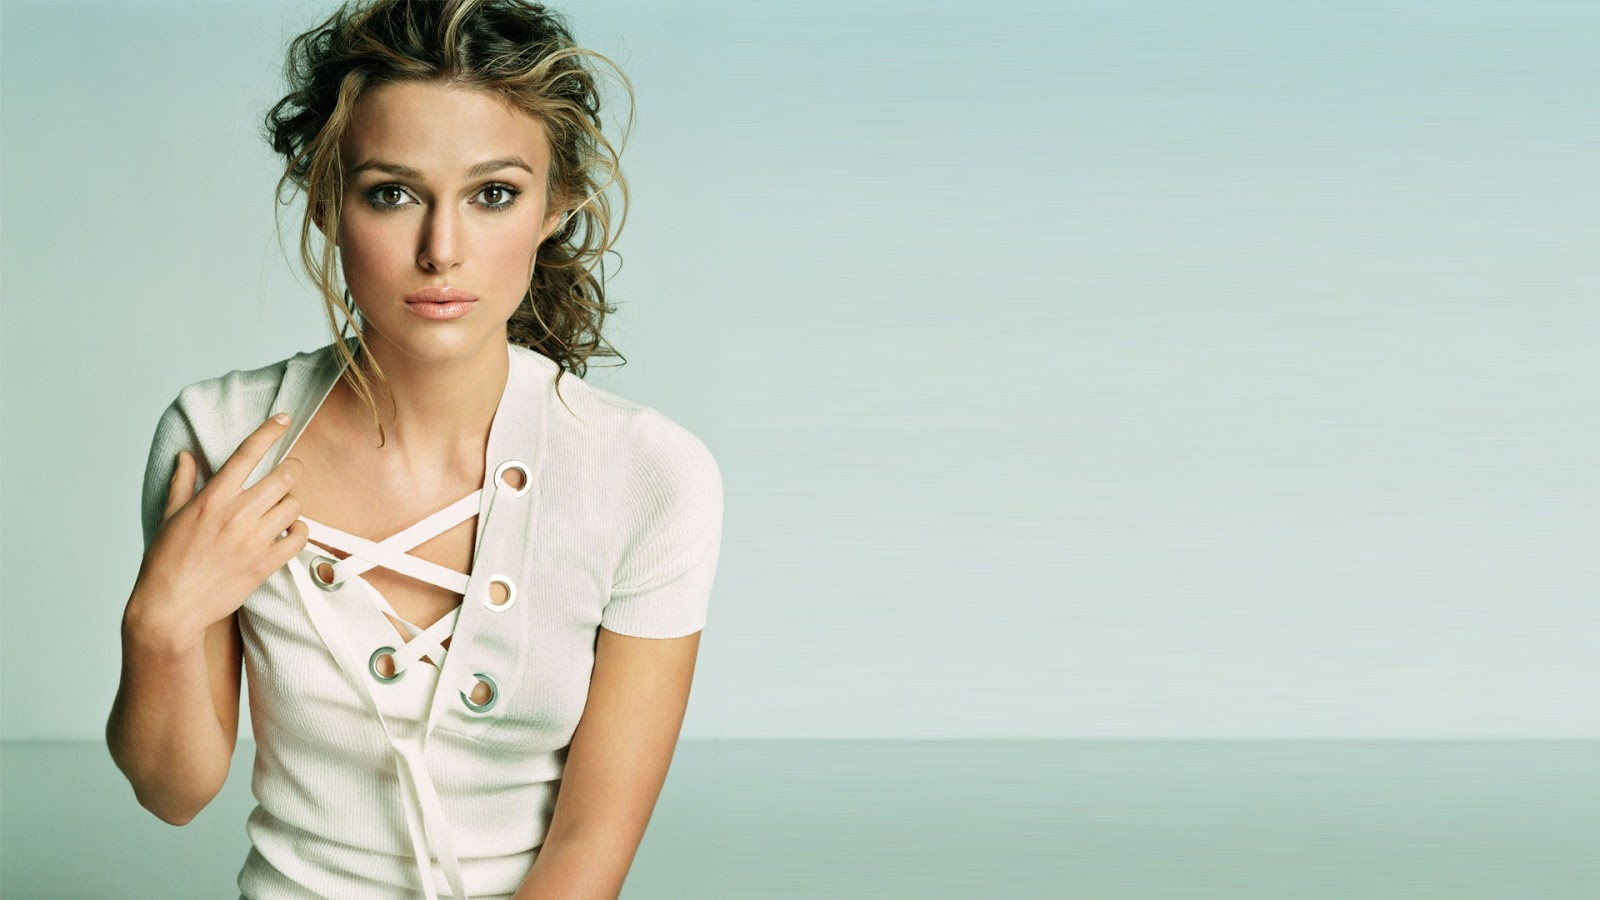 Keira Knightley Hd Wallpaper  Wall Pc-1346